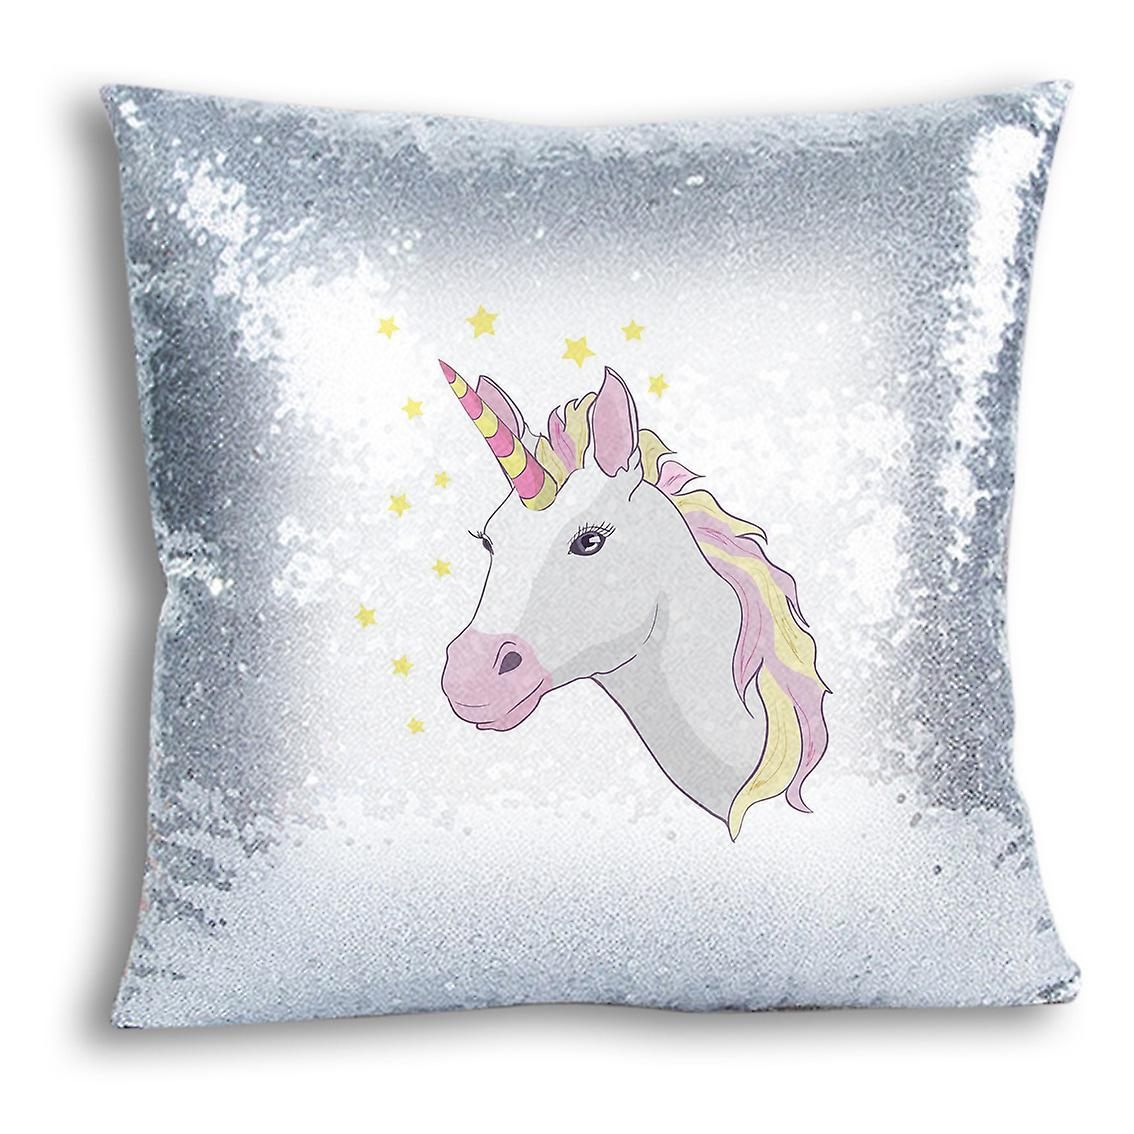 For Sequin Decor I Inserted tronixsUnicorn 6 Silver Design Cover Home Printed CushionPillow With LUqVzGSMp